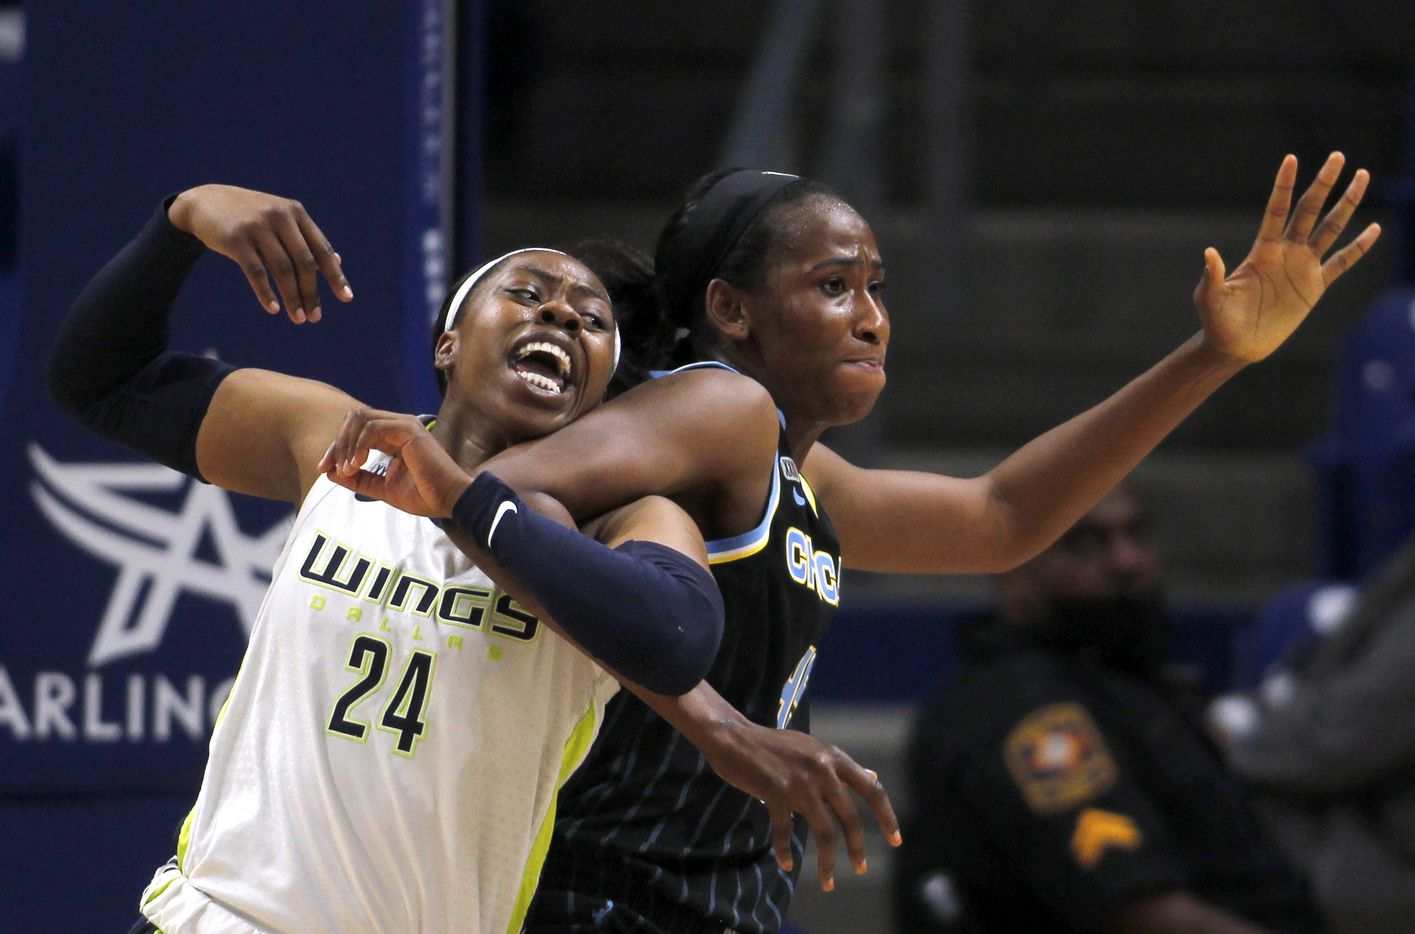 Dallas Wings guard Arike Ogunbowale (24) becomes tangled with Chicago Sky center Astou Ndour-Fall (45) as the two battled for rebound positioning during 2nd half action. Dallas won 100-91.The two WNBA teams played their game at College Park Center in Arlington on July 2, 2021. (Steve Hamm/ Special Contributor)